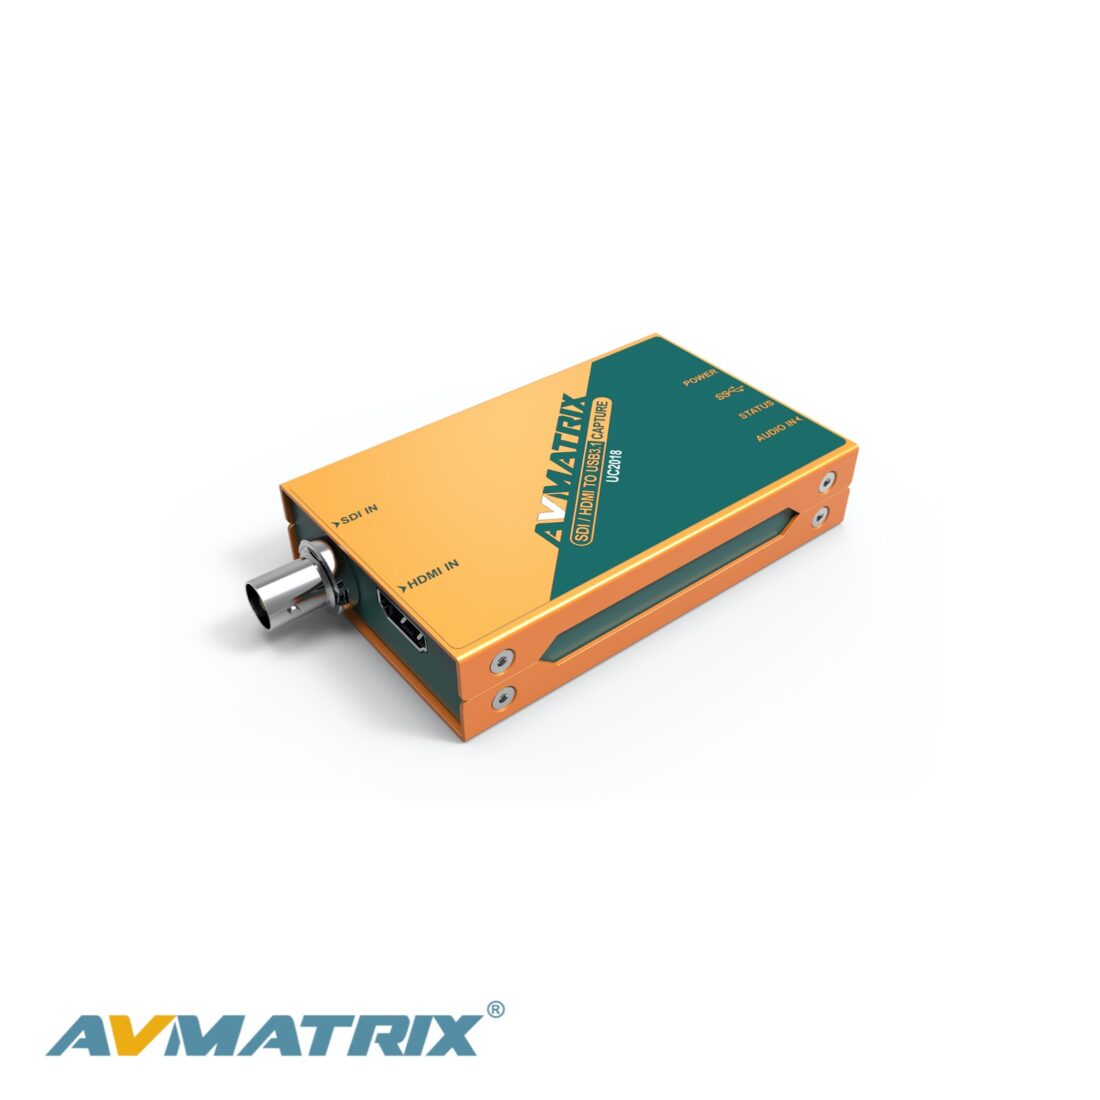 AVMatrix UC-2018 main